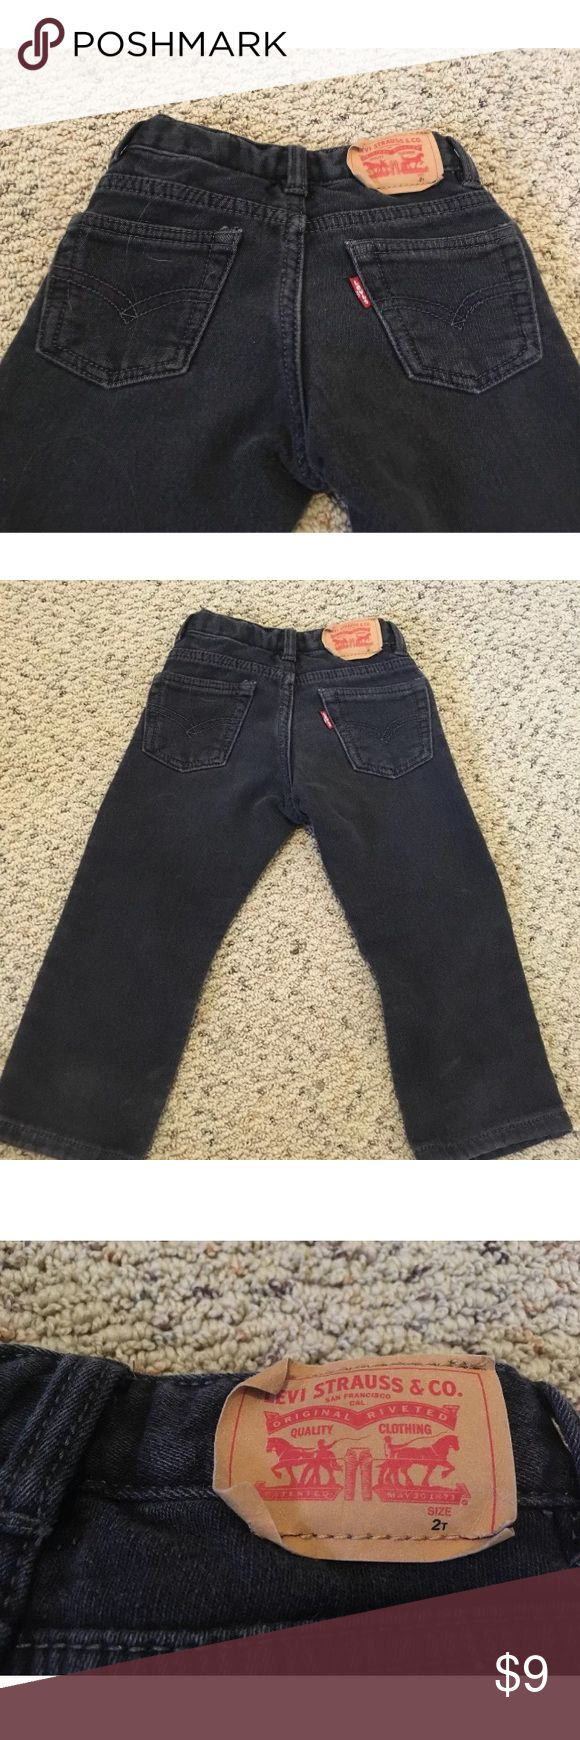 Boy's 2T Knit 511 Pants Black Great condition. Soft, knit pant with the jean look. Black in color. My son hates wearing denim, so these were a great alternative. Levi's Bottoms Jeans